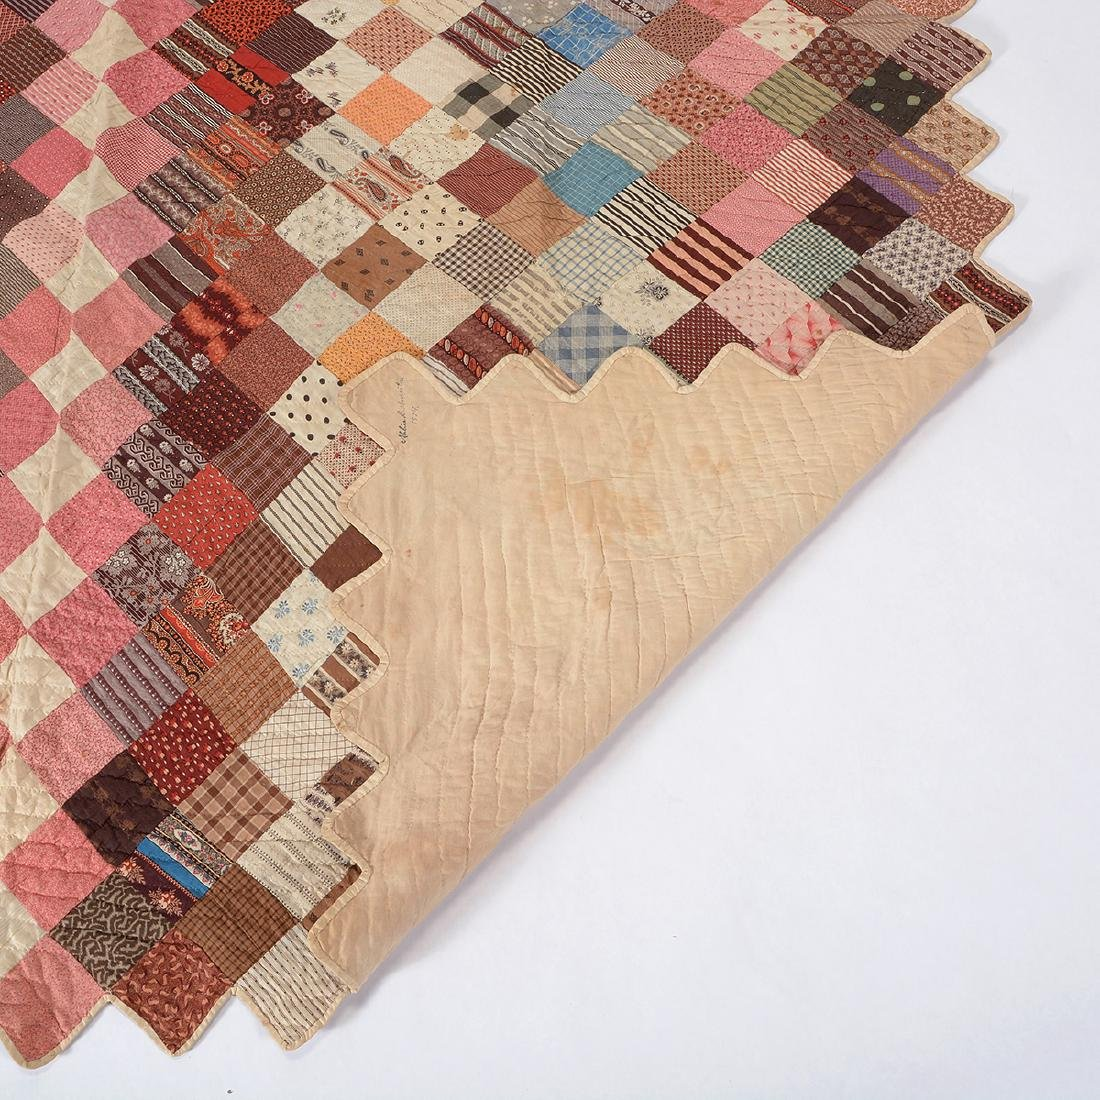 Diamond Quilt by Abbie B. Sweetsea, 1874 - 3